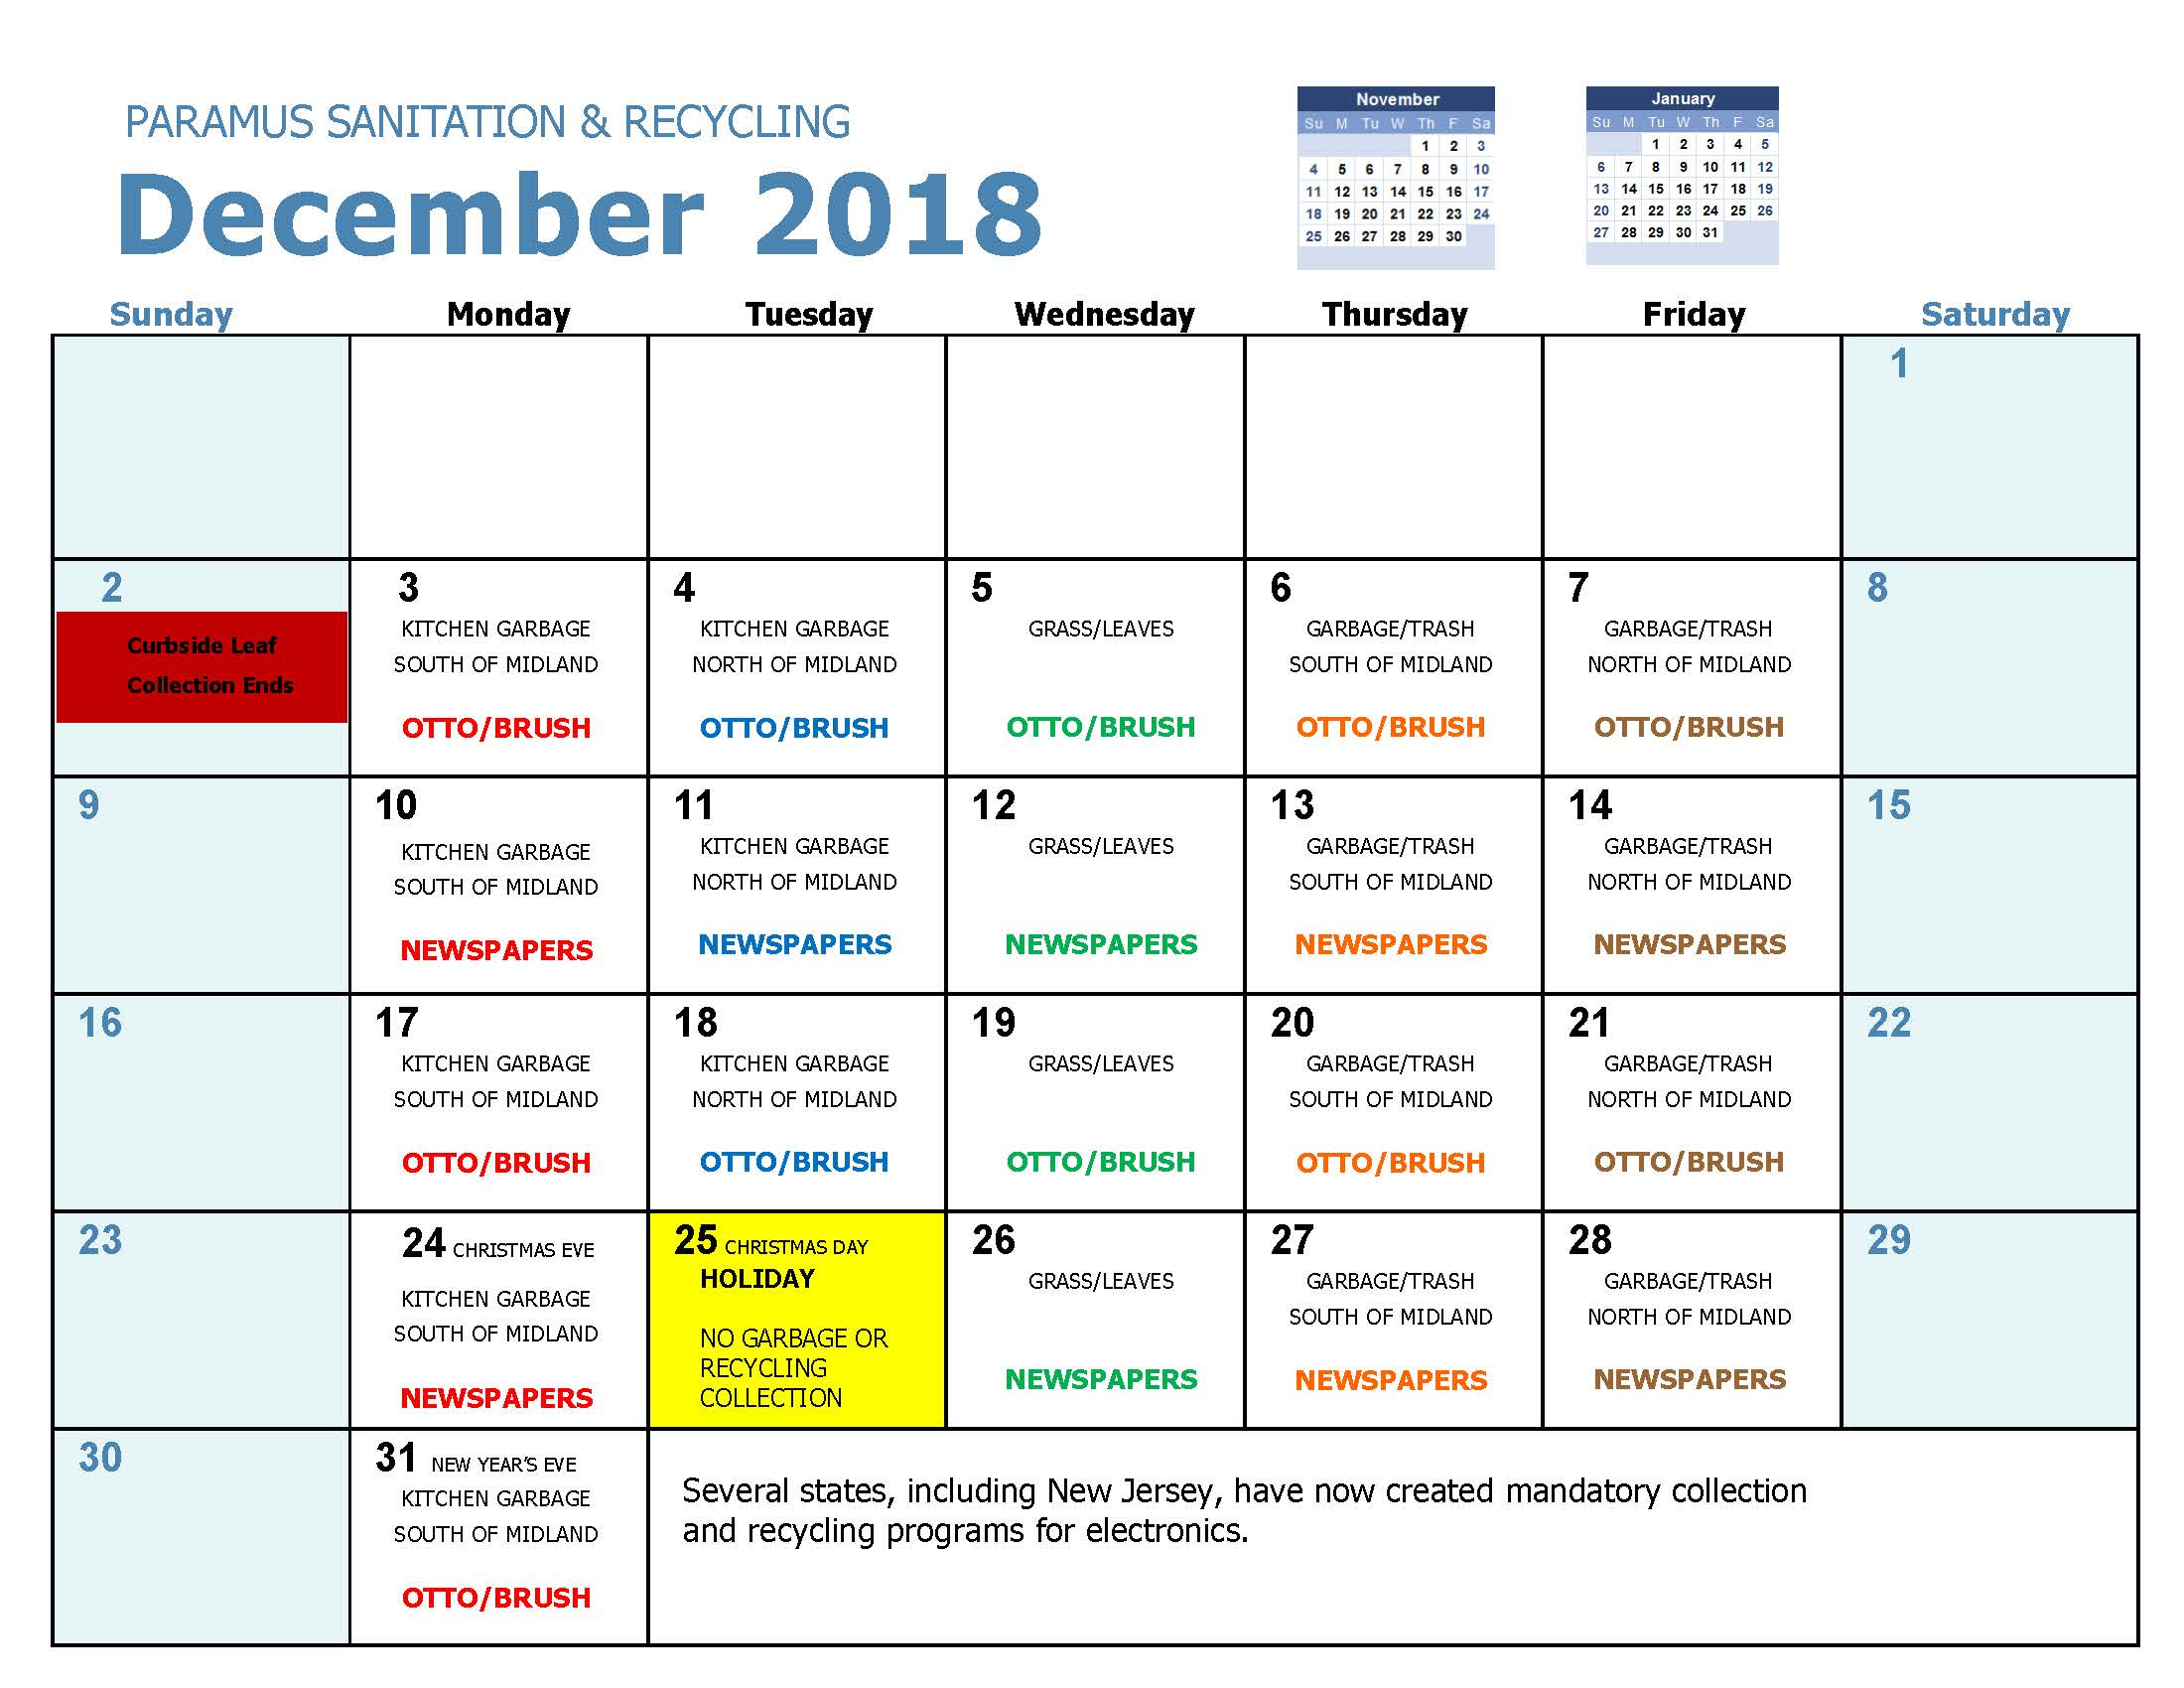 2018 Recycling Calendar Dec